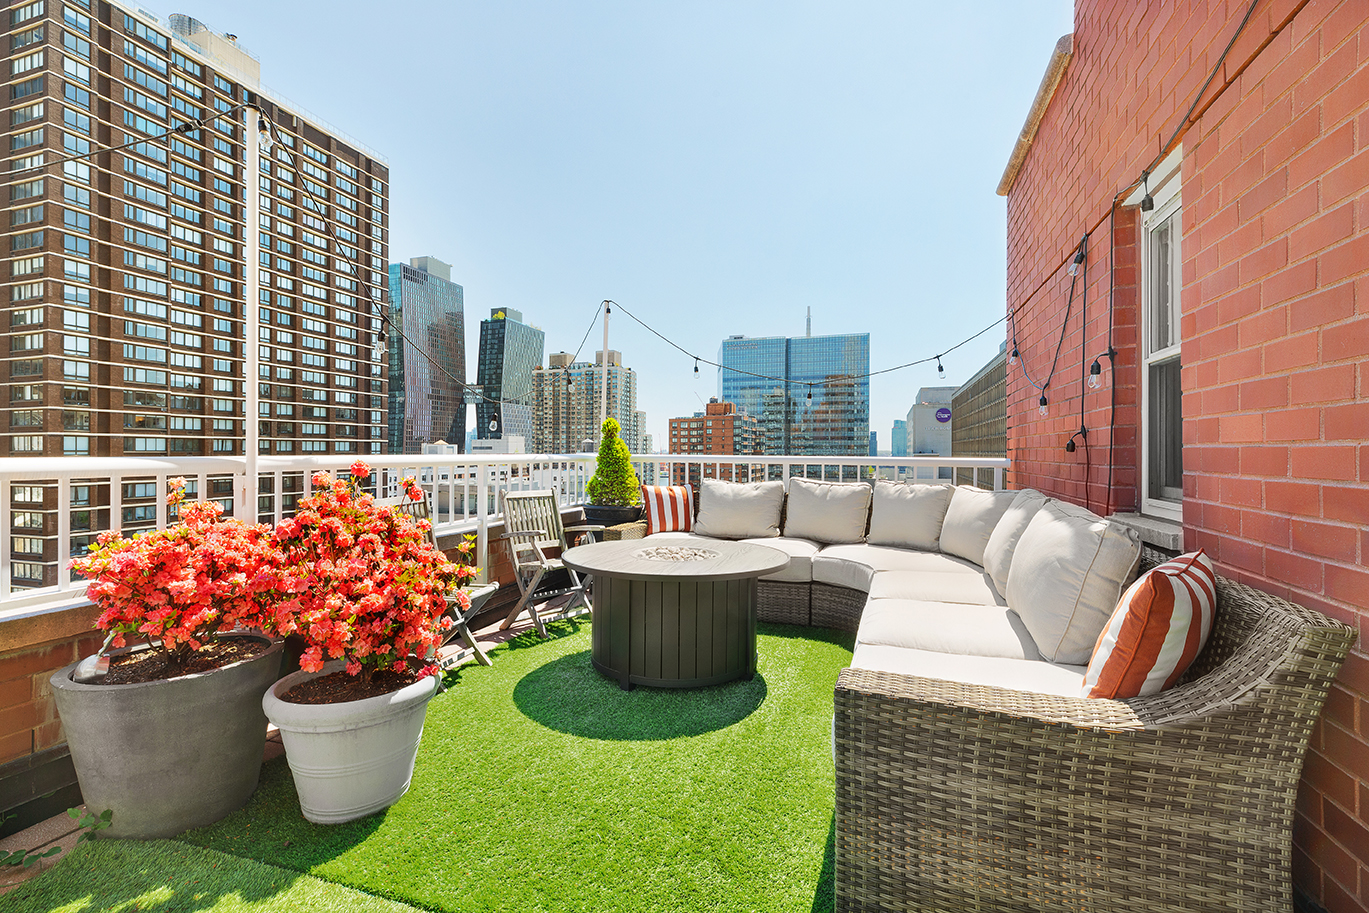 A terrace with a large beige couch, several planters, and a round wooden table.